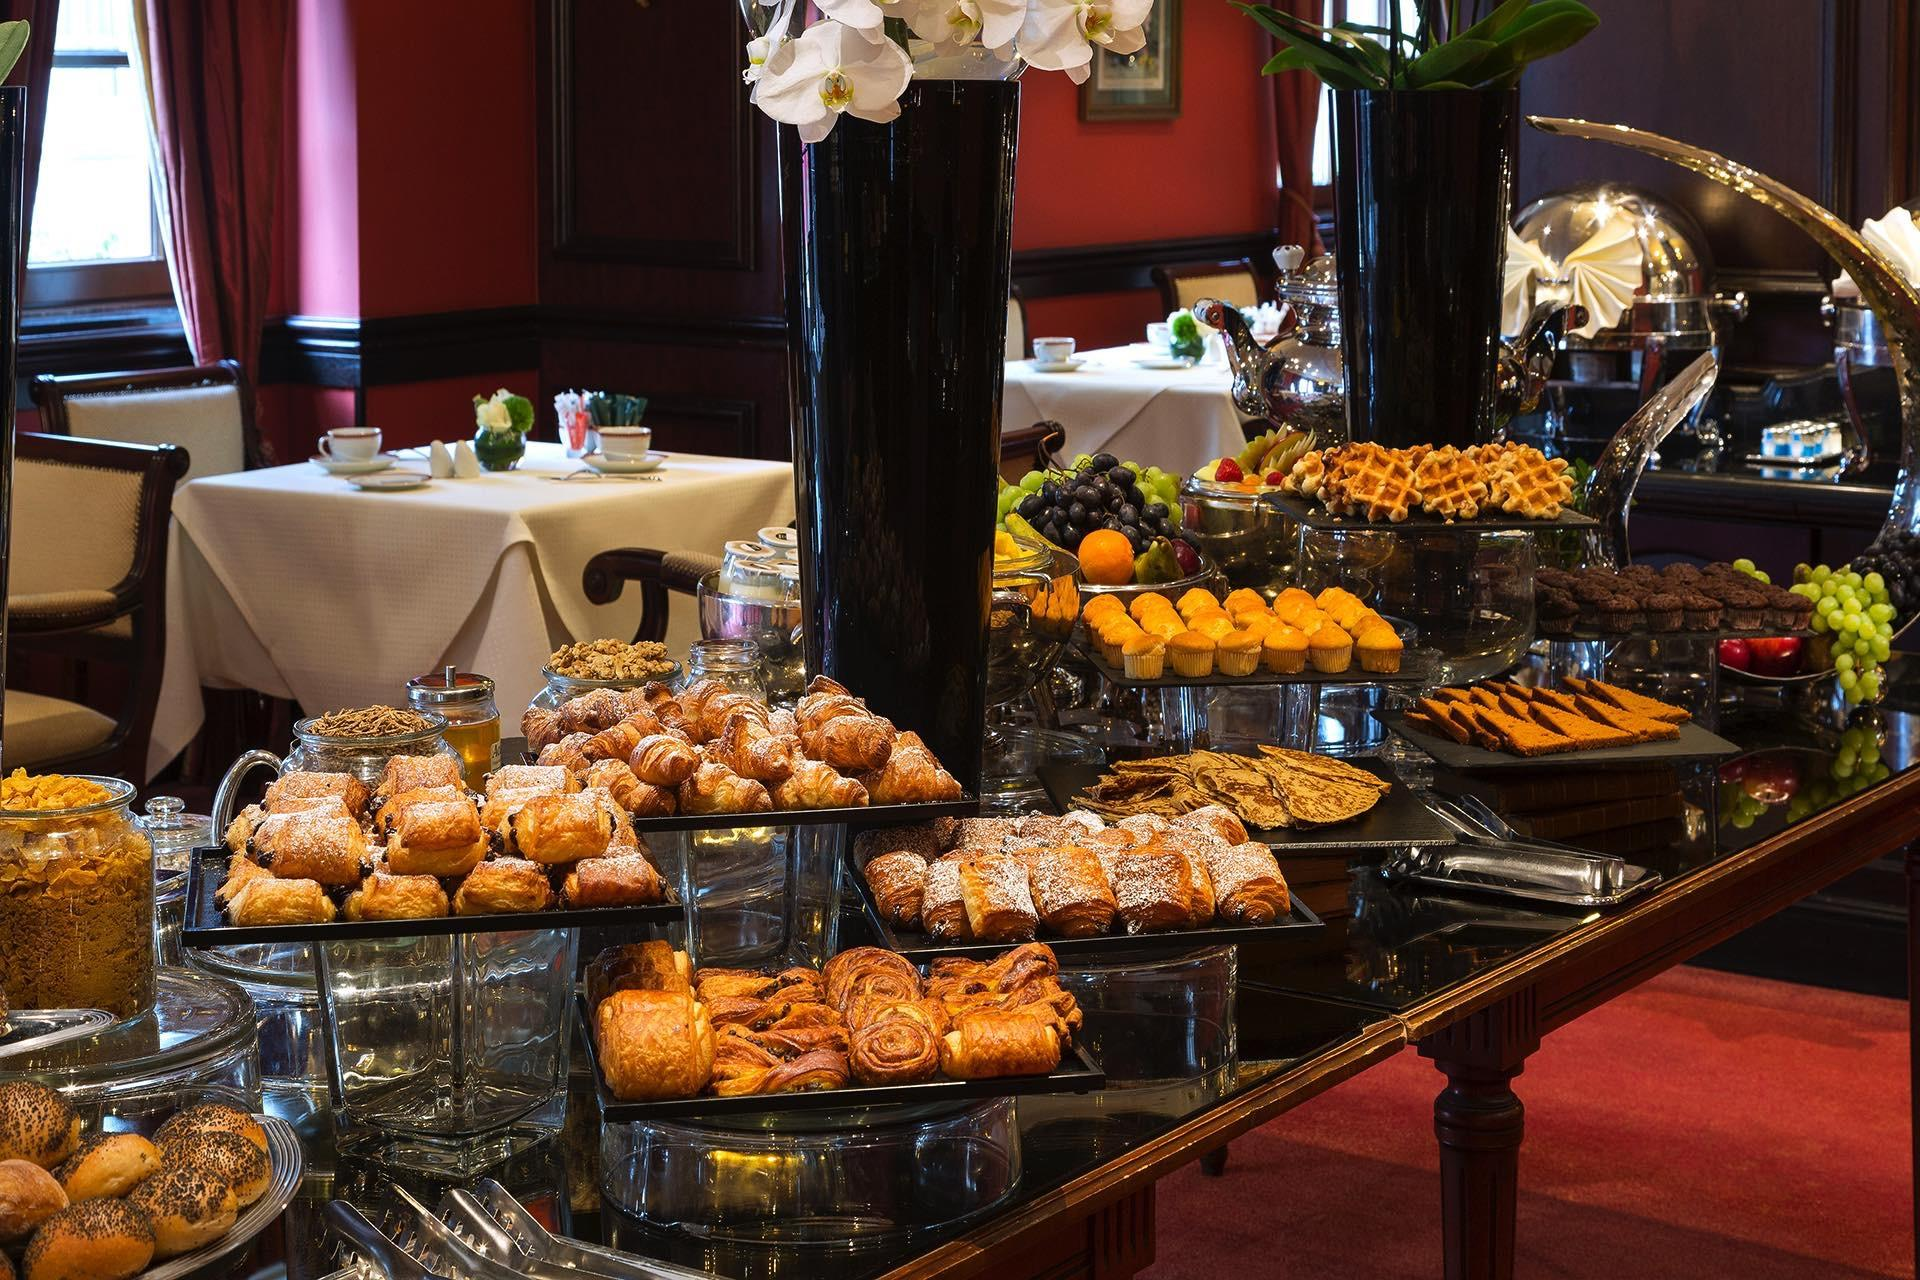 Breakfast Buffet Bakery at Warwick Brussels